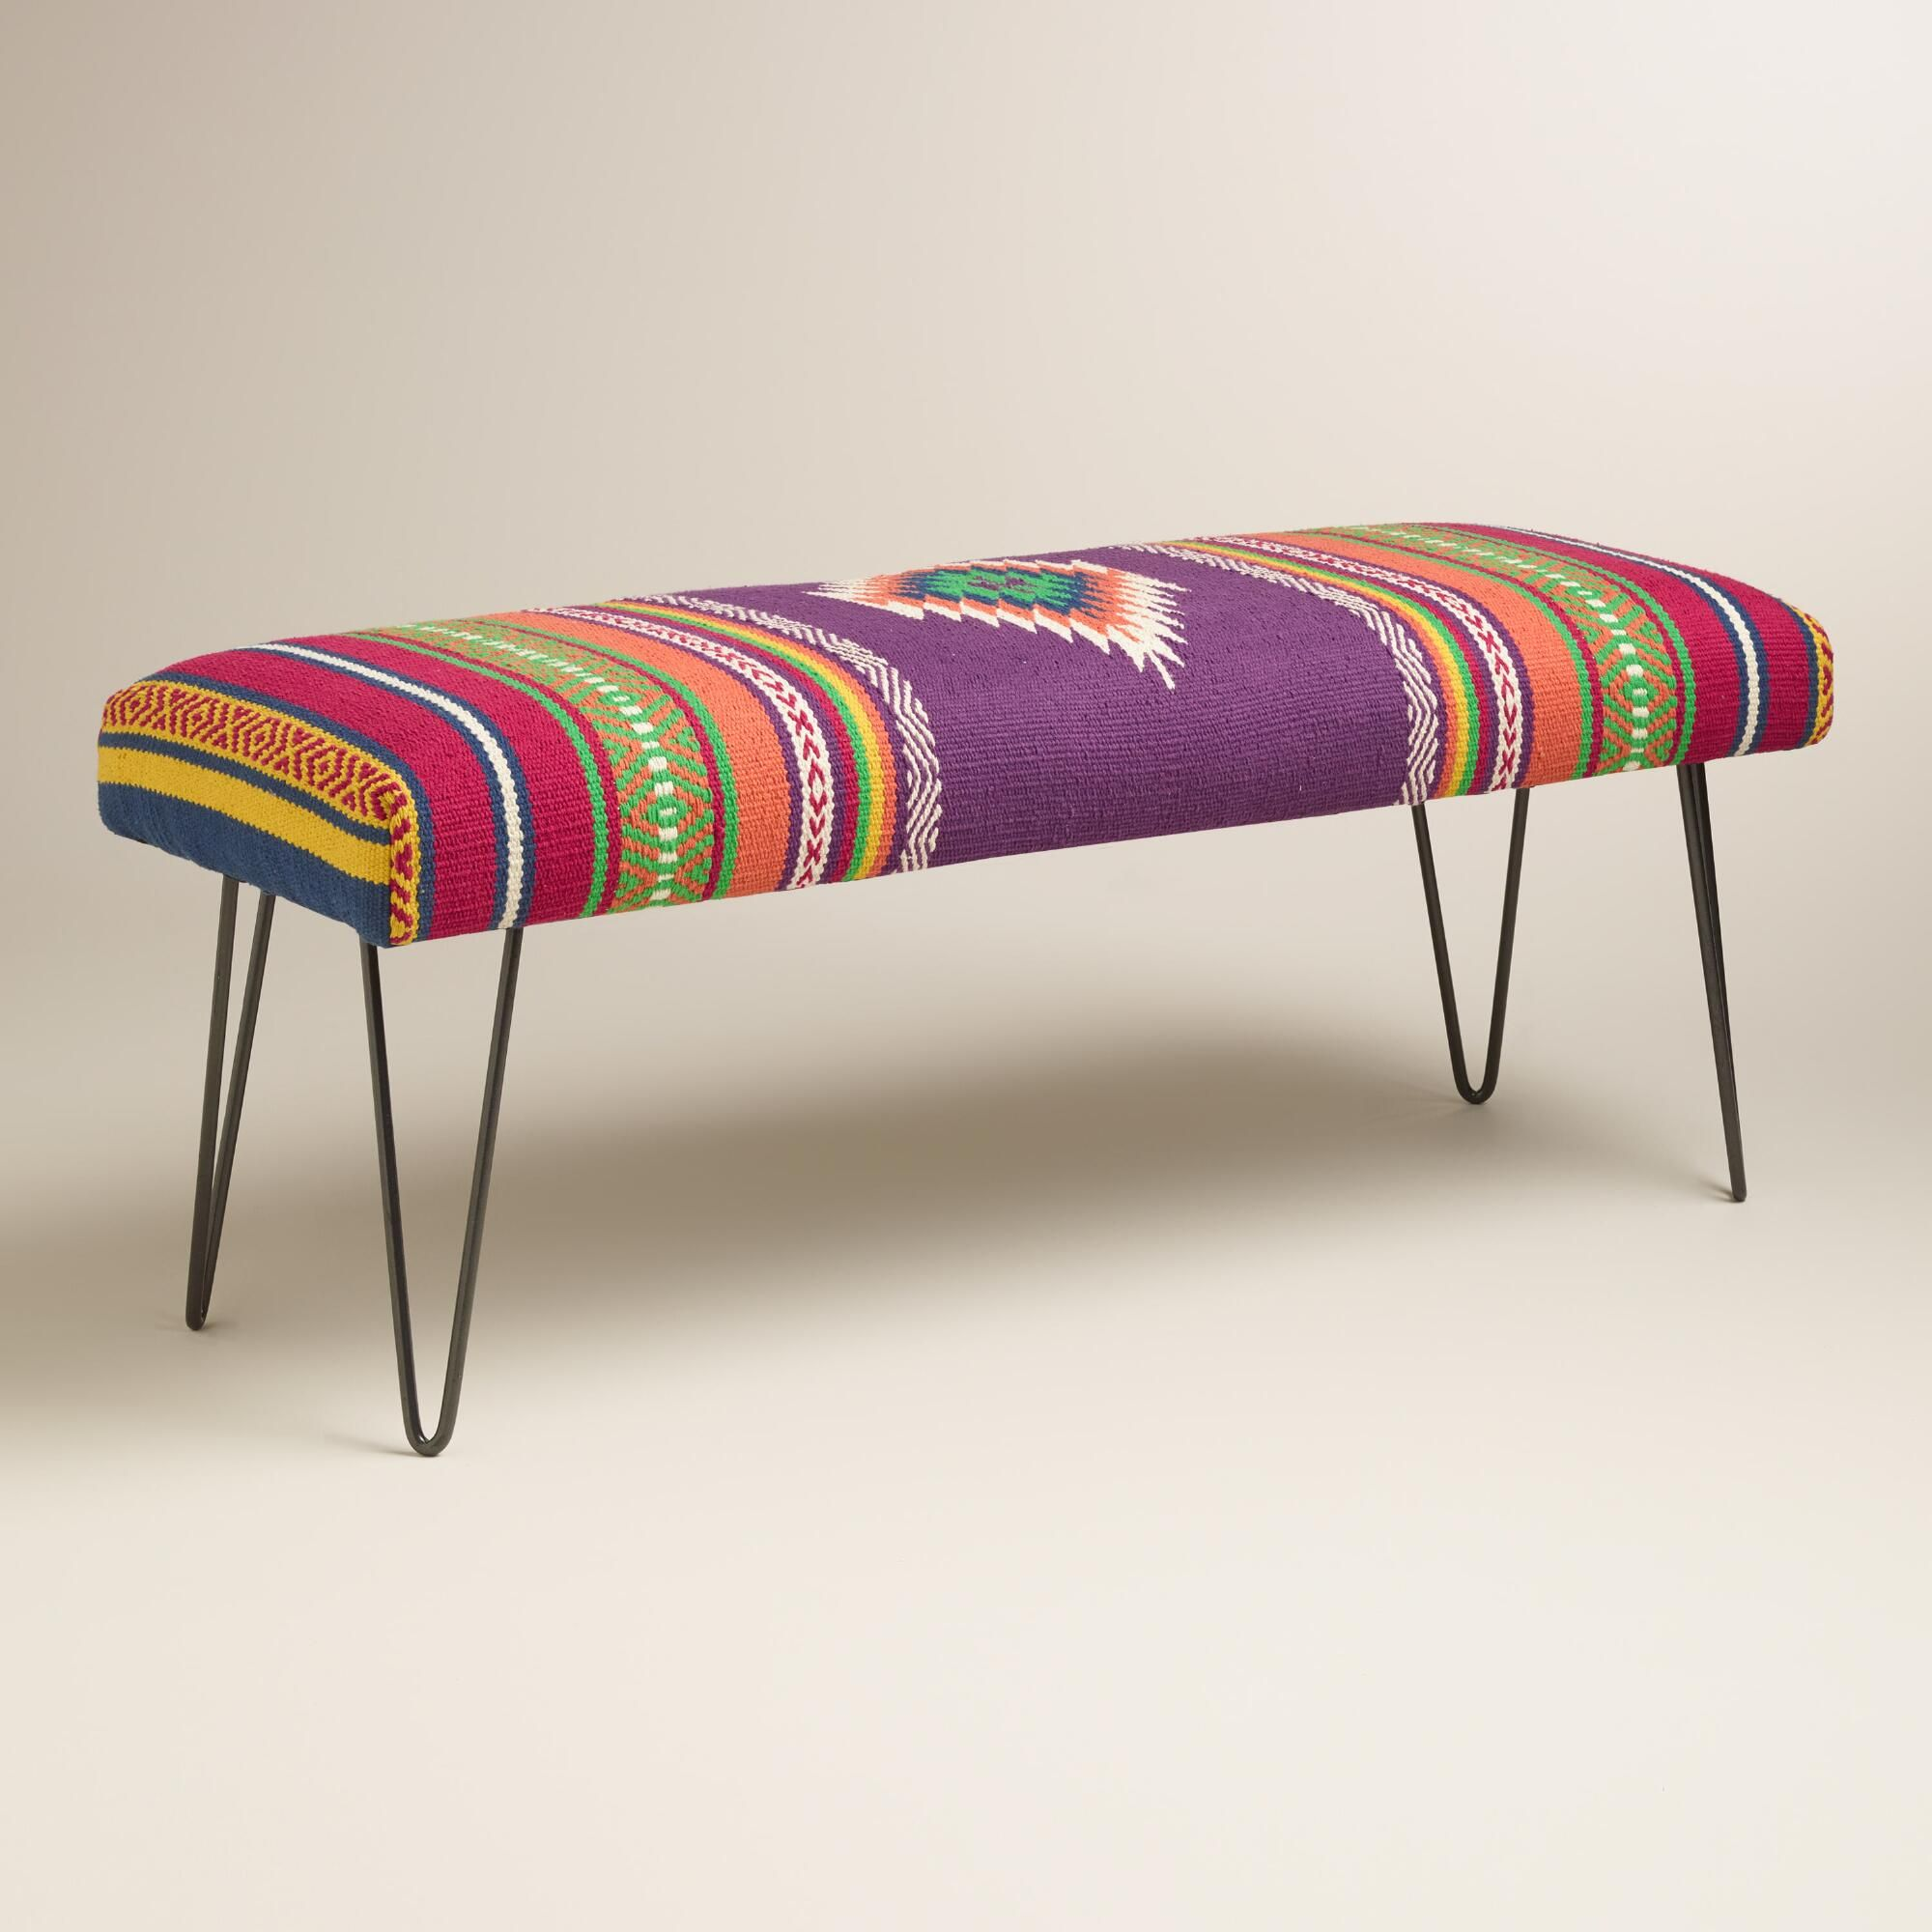 Bedroom bench with arms - Calypsa Upholstered Hairpin Bench